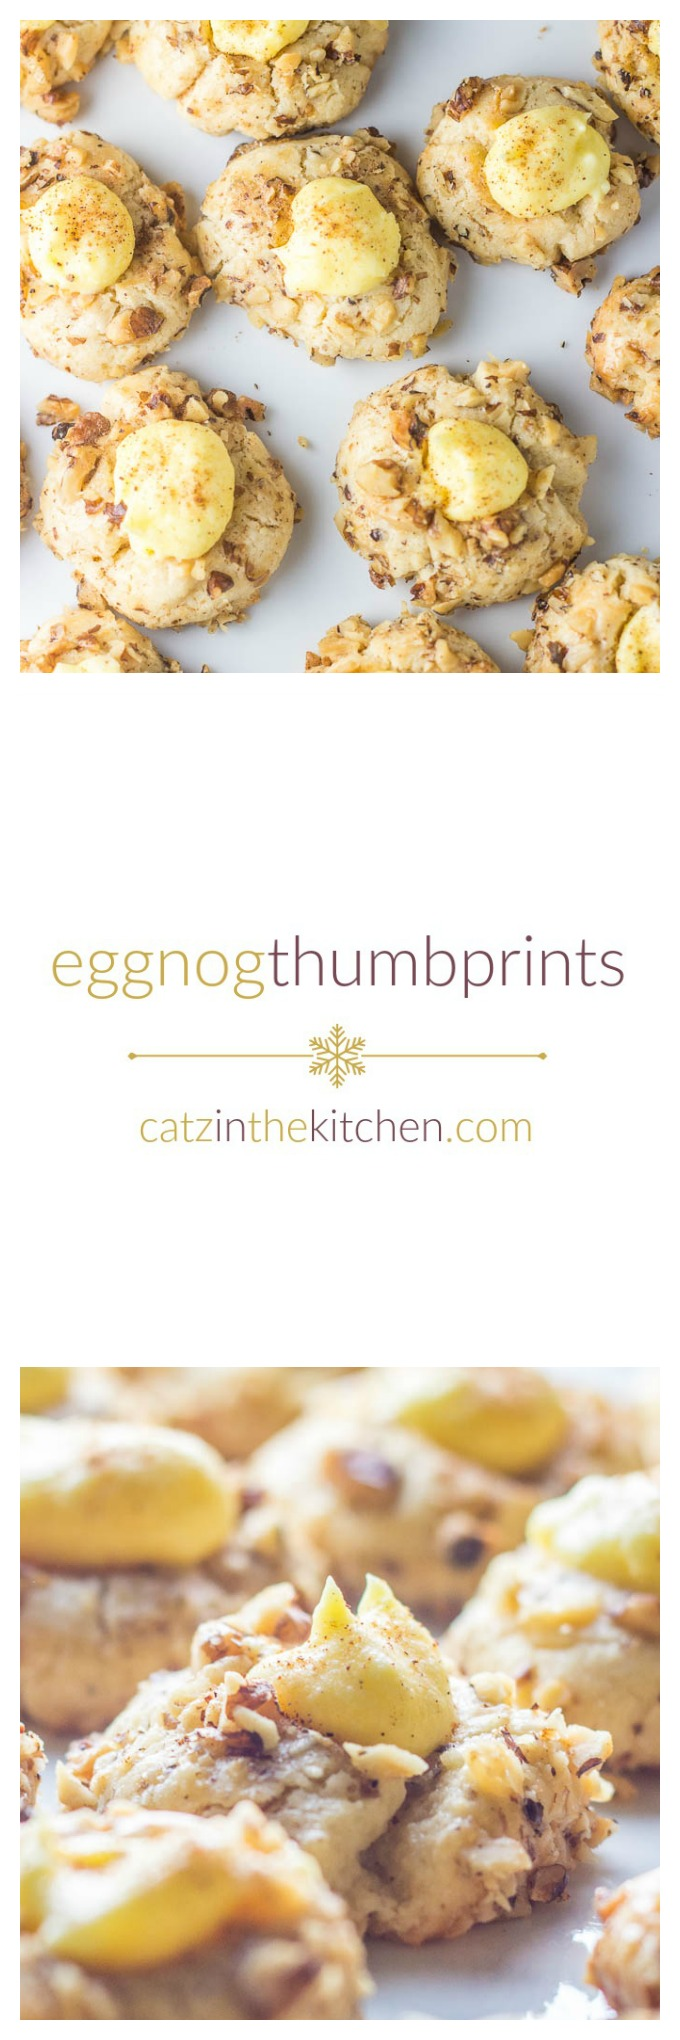 Eggnog Thumbprints | Catz in the Kitchen | catzinthekitchen.com | #cookies #eggnog #Christmas